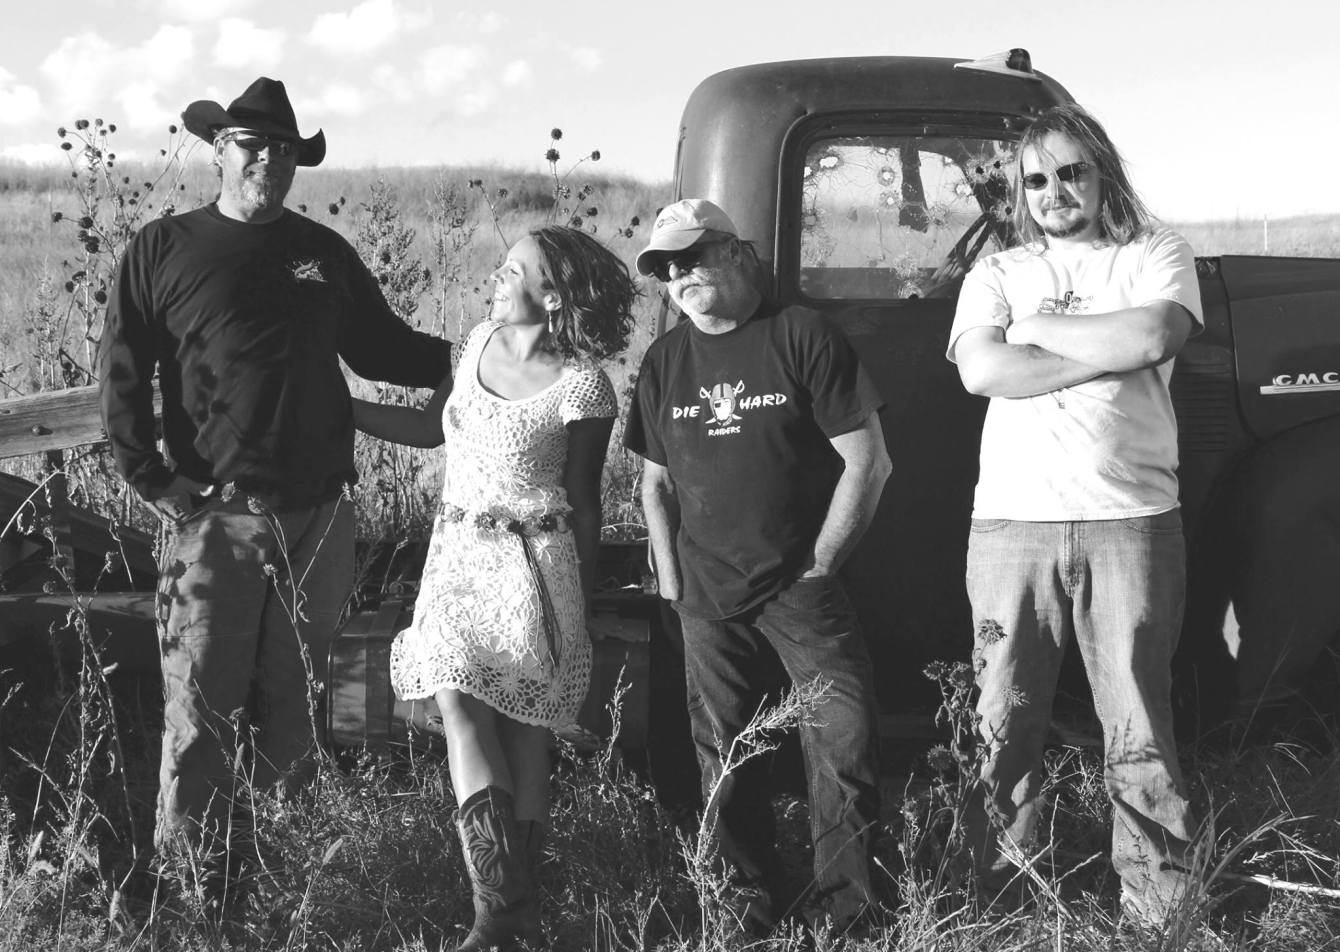 Black and white photo of The Hidden Timber Band posing by an old pick-up truck in a field